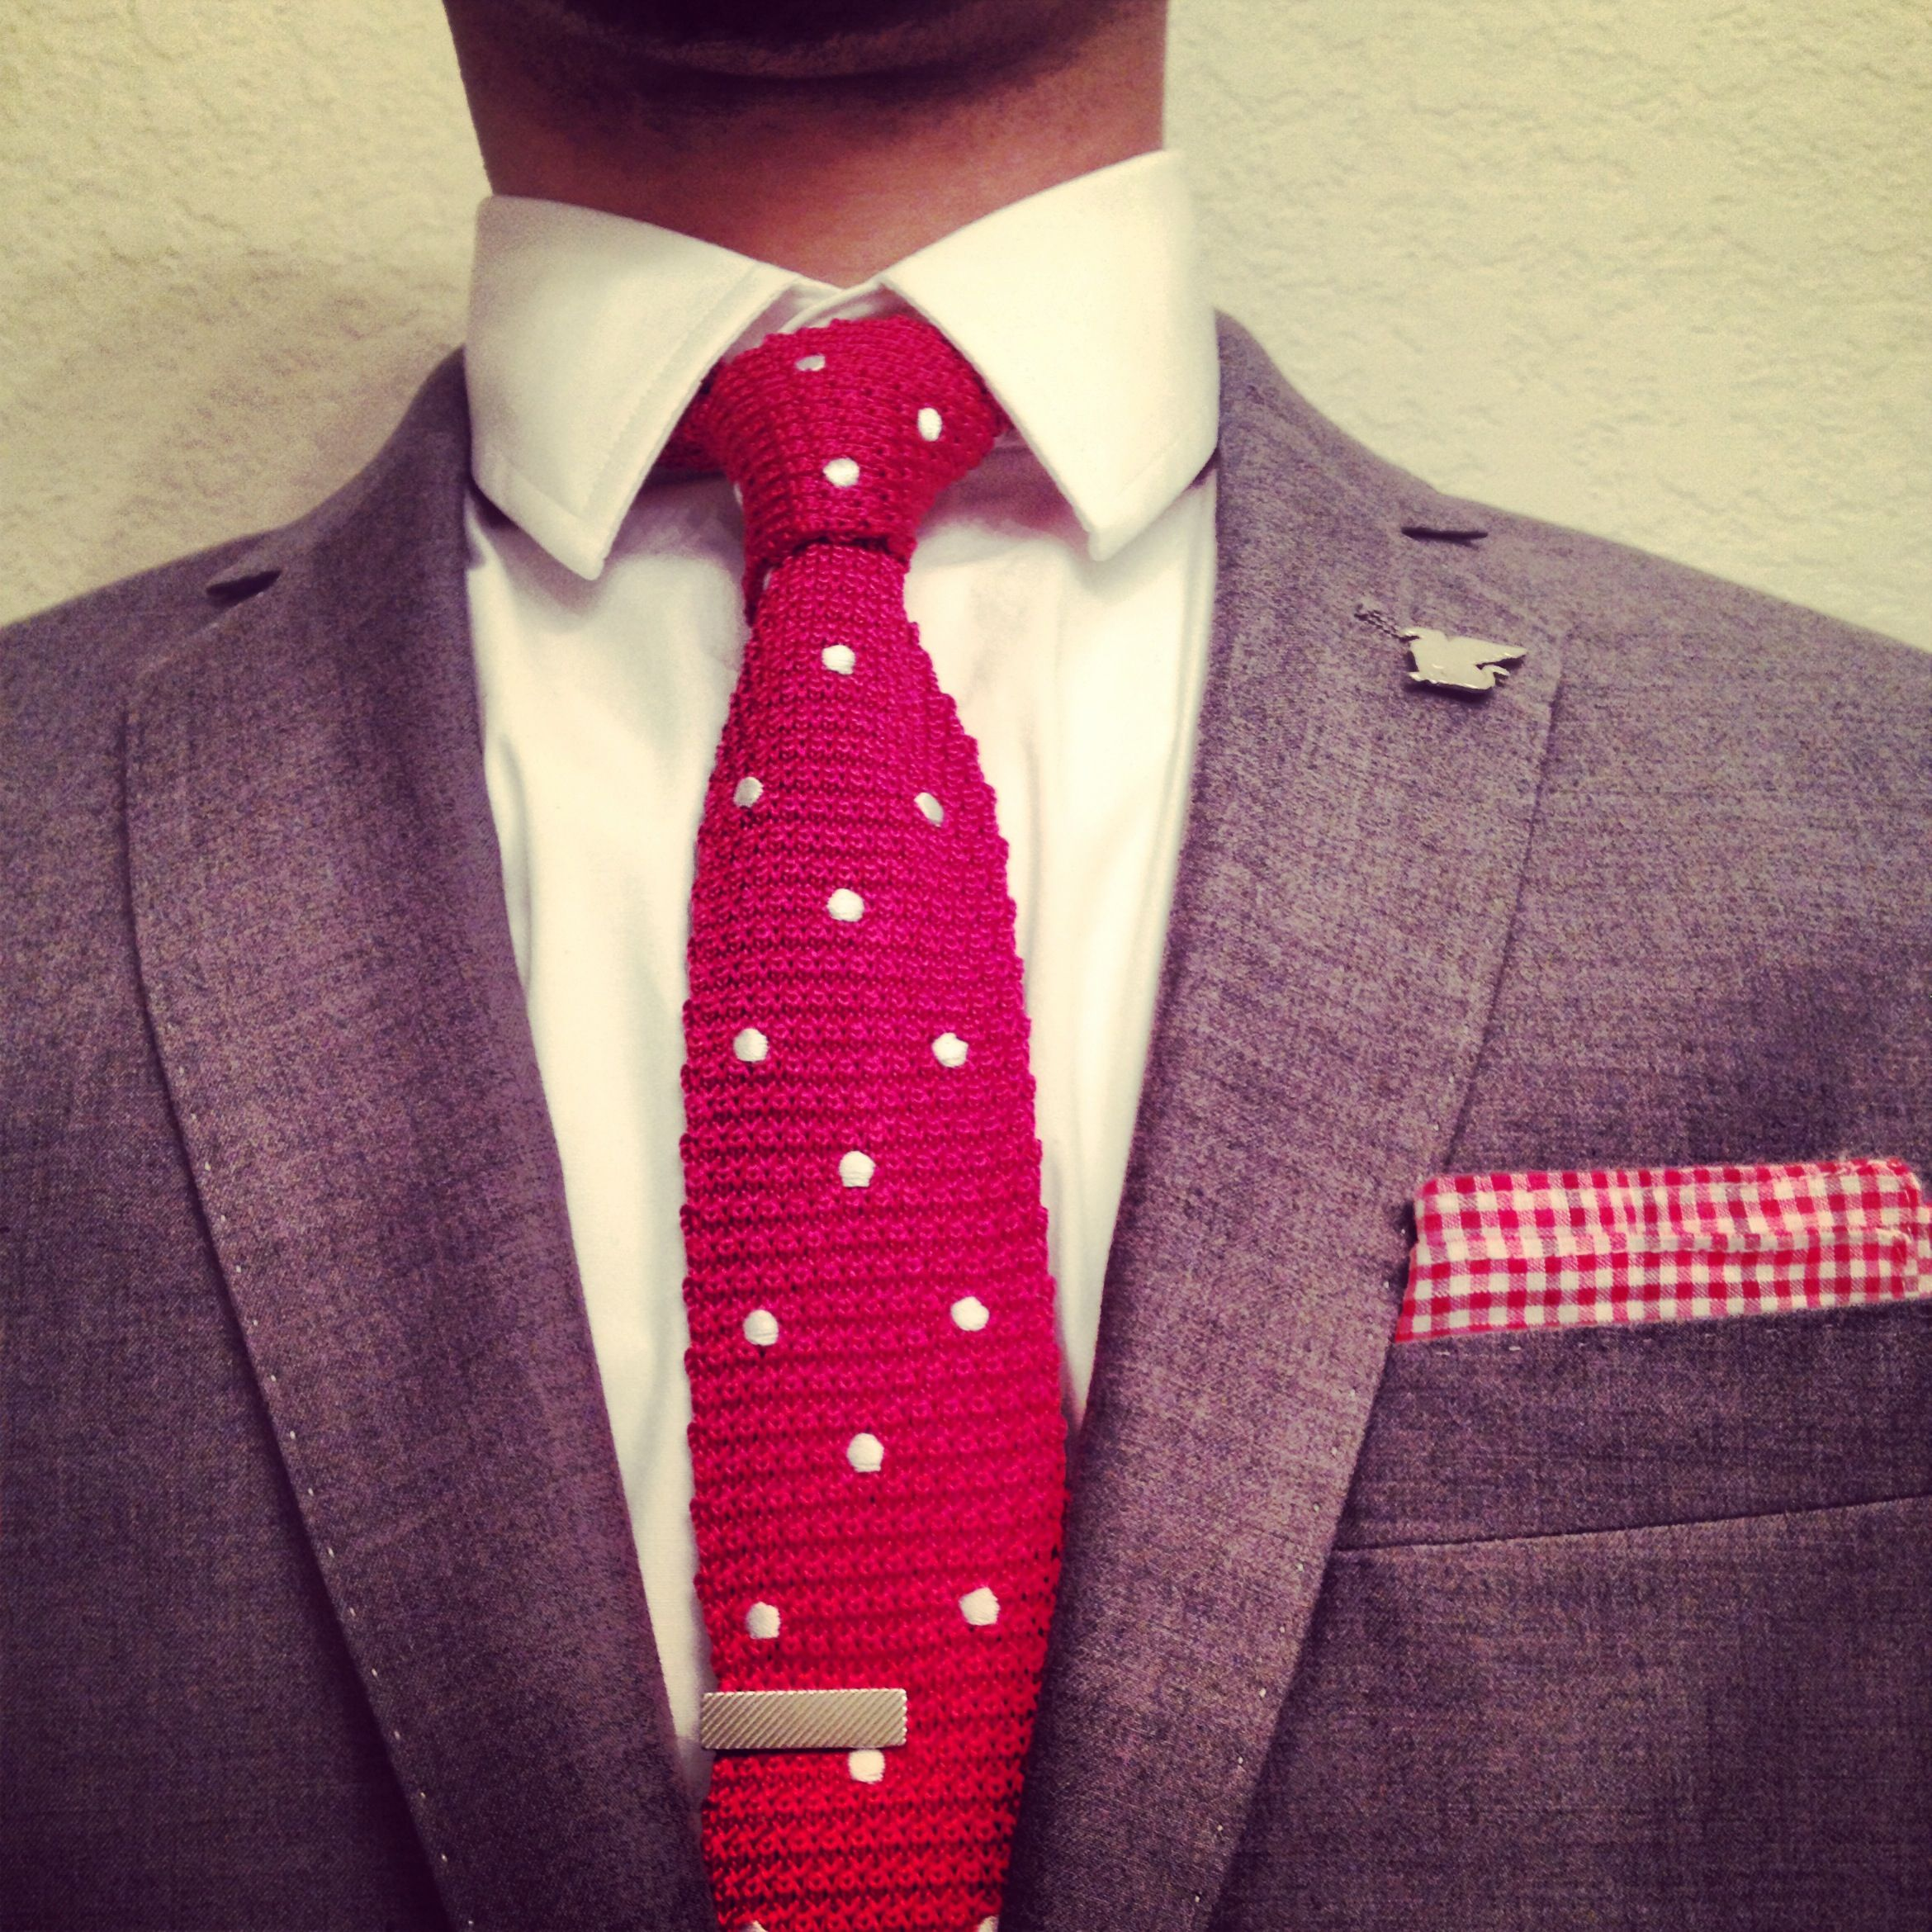 Tie and tie bar from The Tie Bar